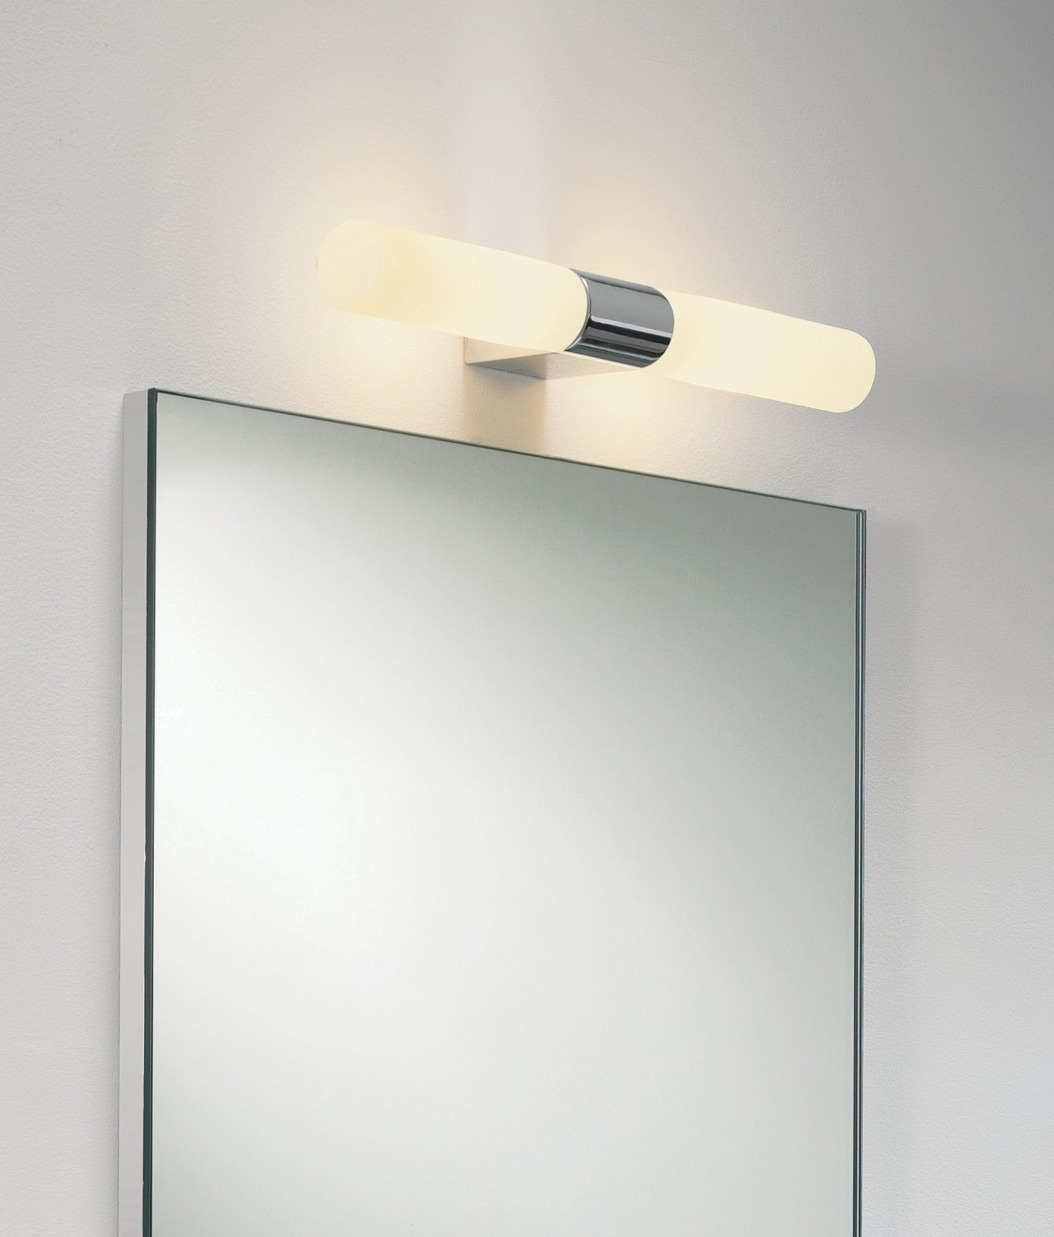 Polished chrome twin bathroom wall light Polished chrome bathroom mirrors